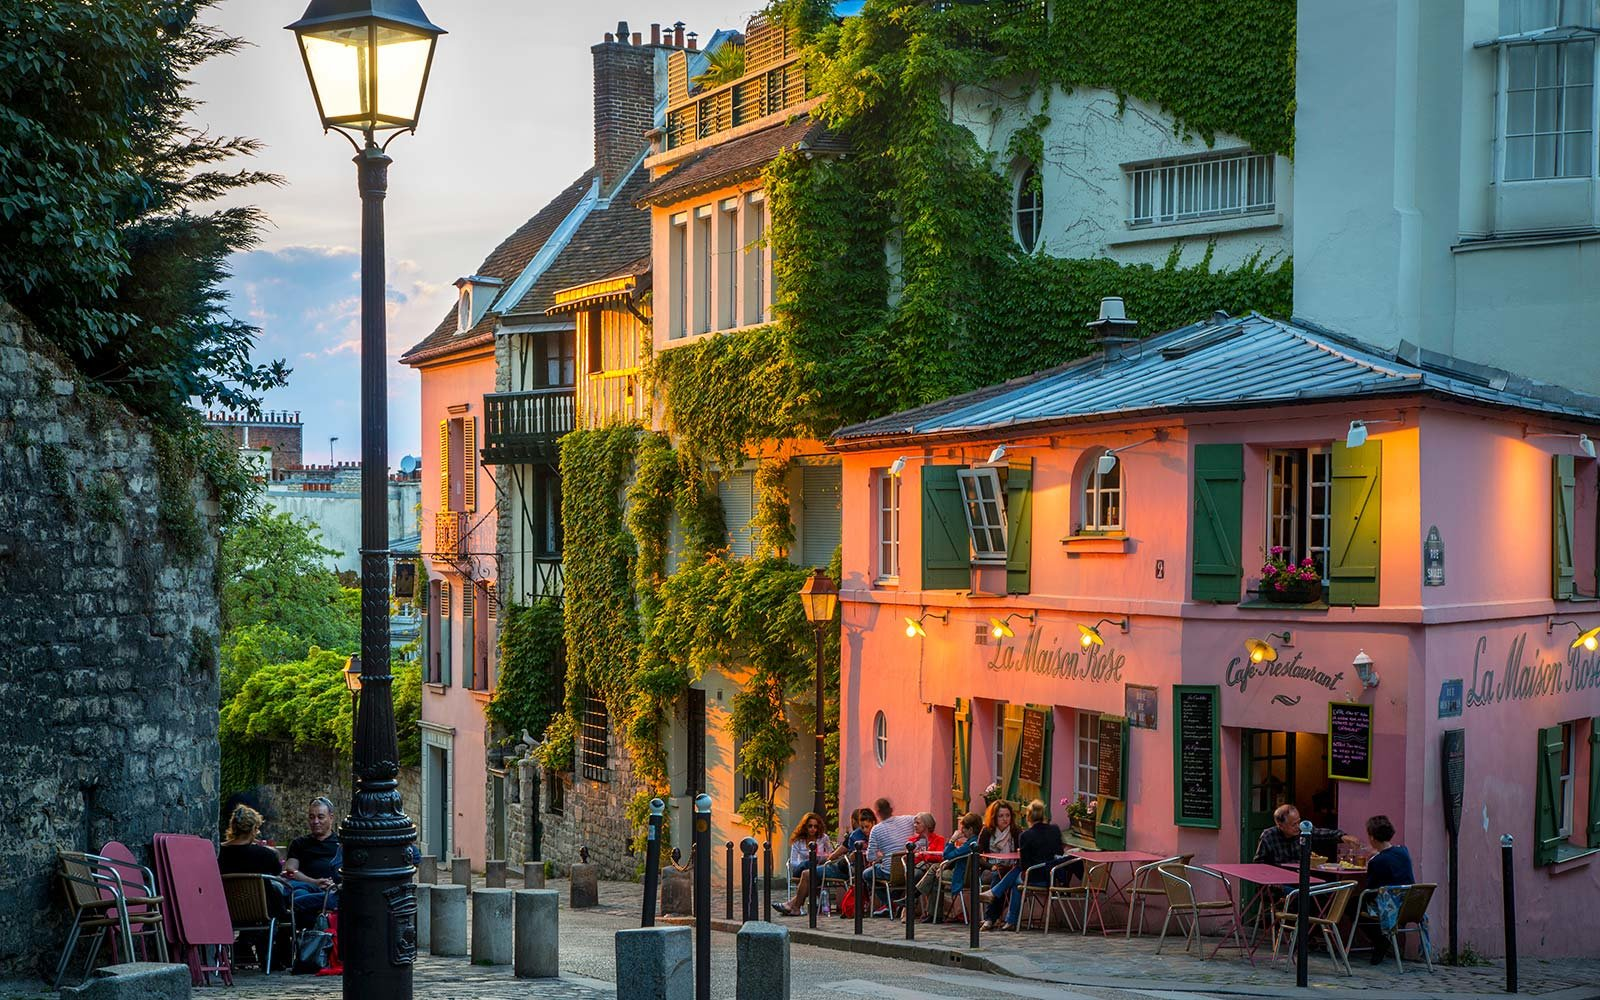 montmartre paris france neighborhood sunset romantic restaurant flight deal